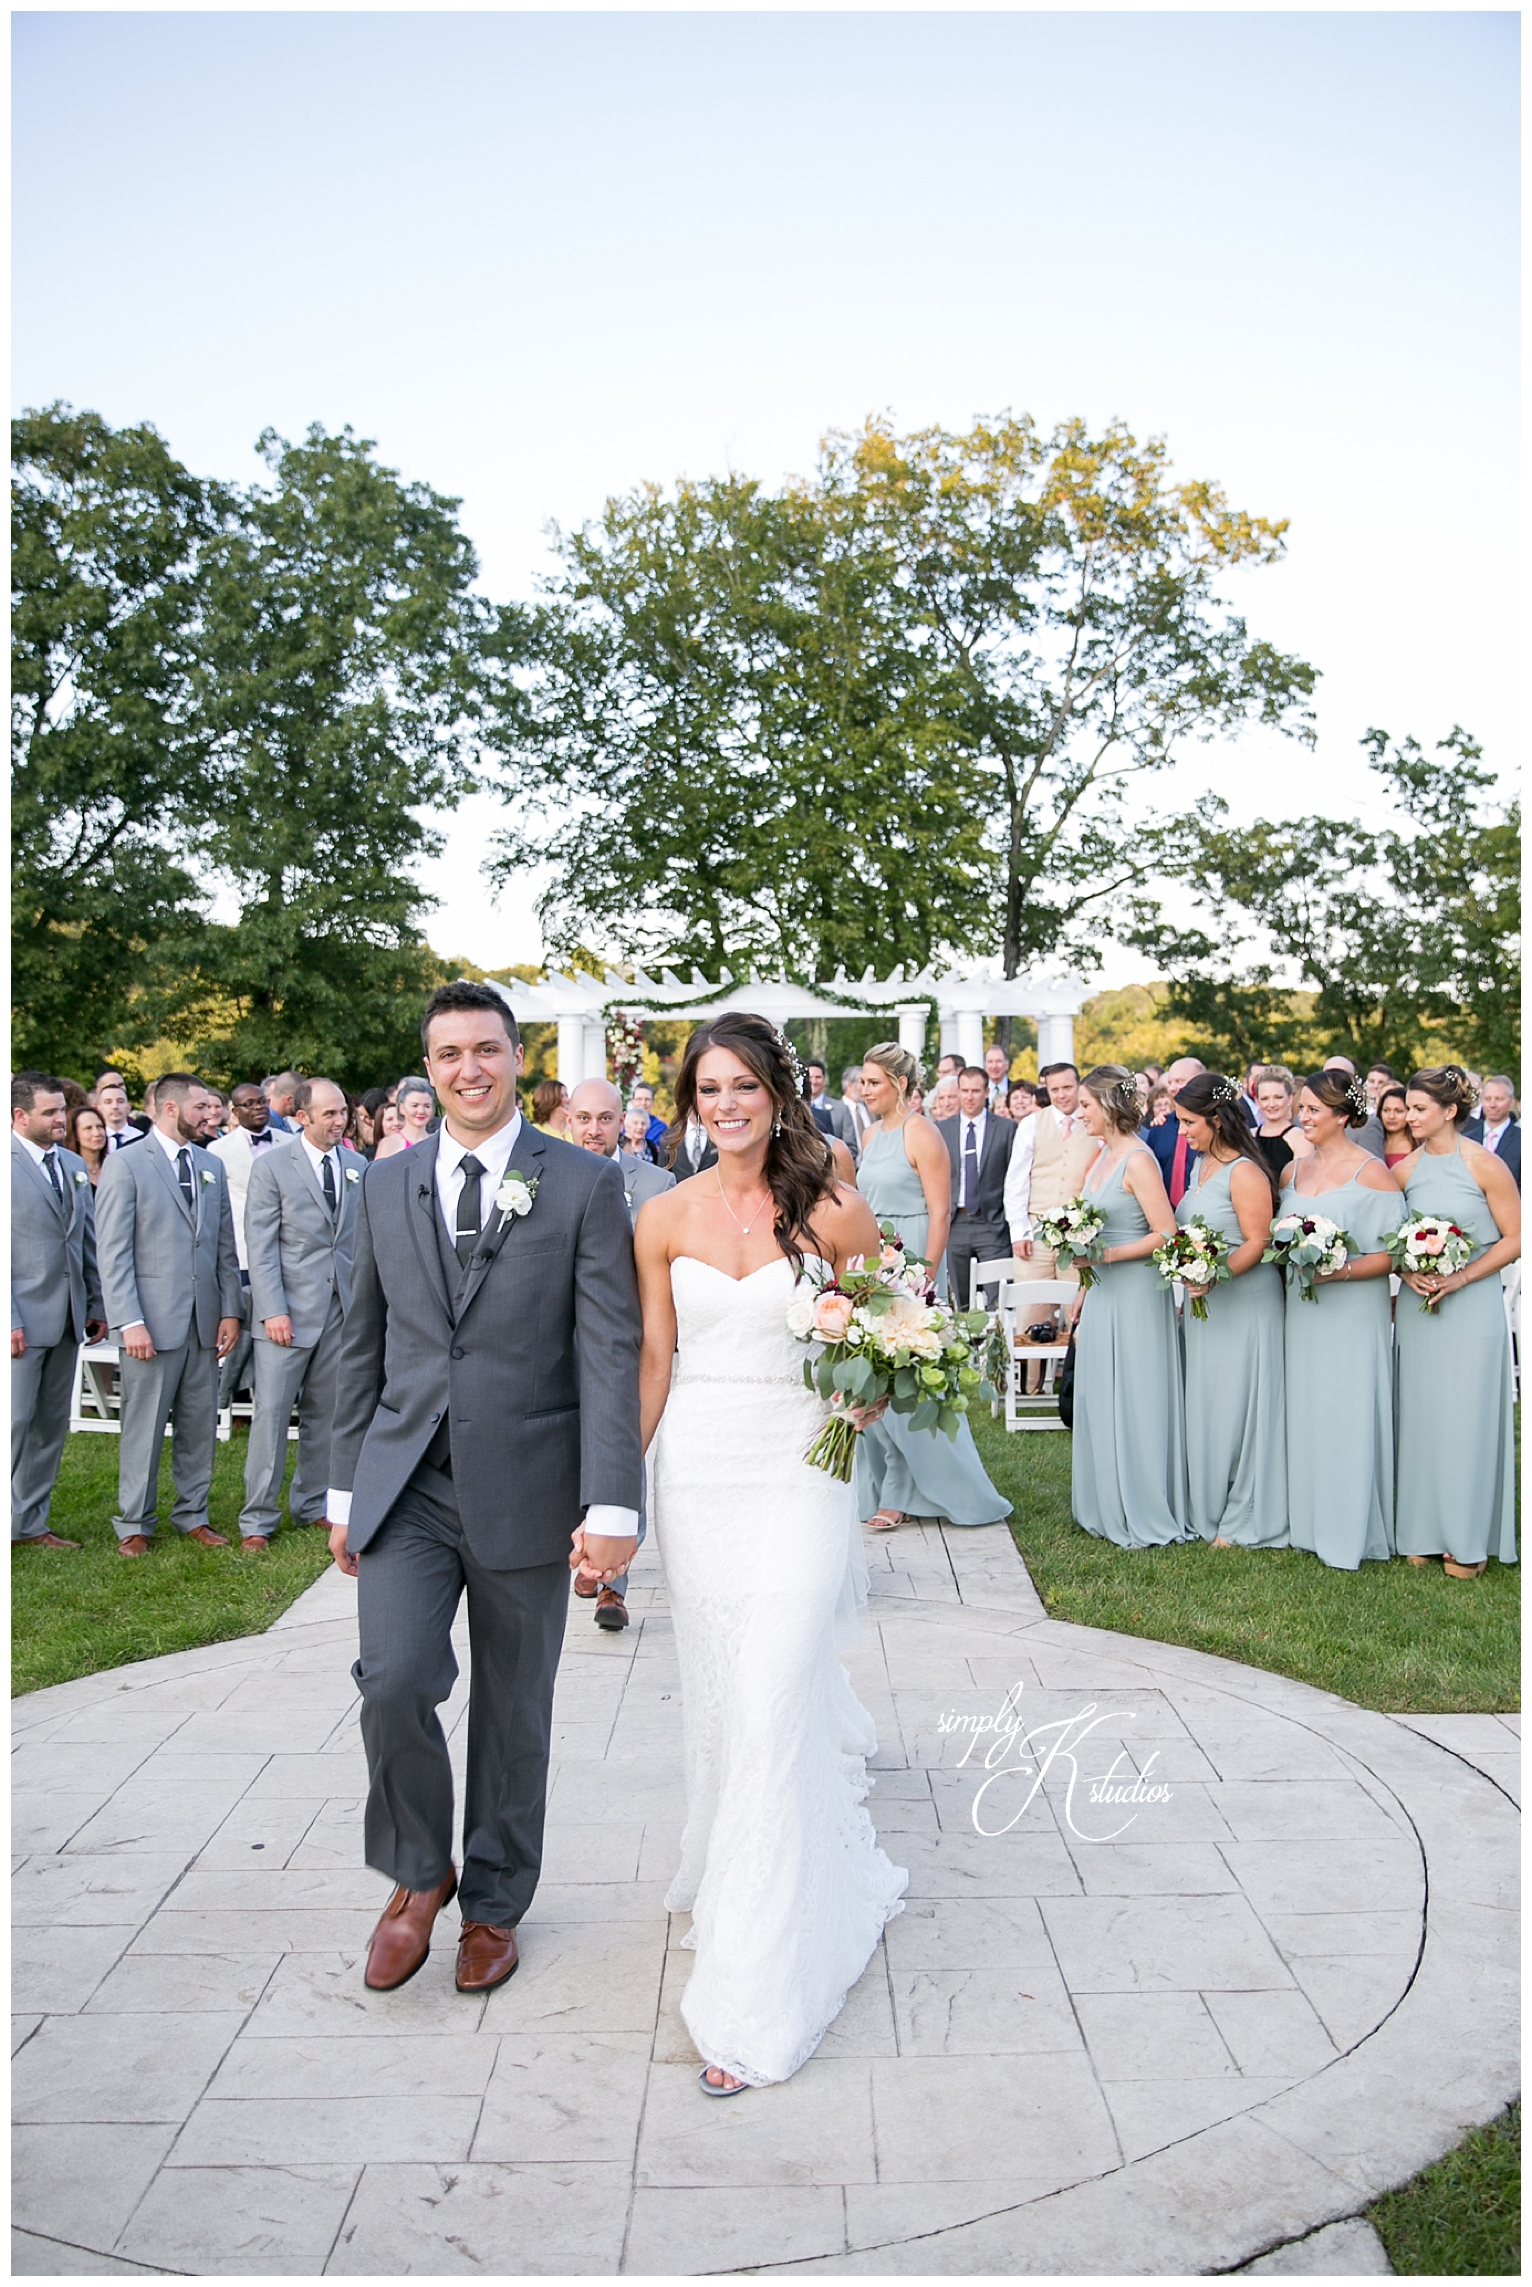 Outdoor Wedding Ceremonies in CT.jpg